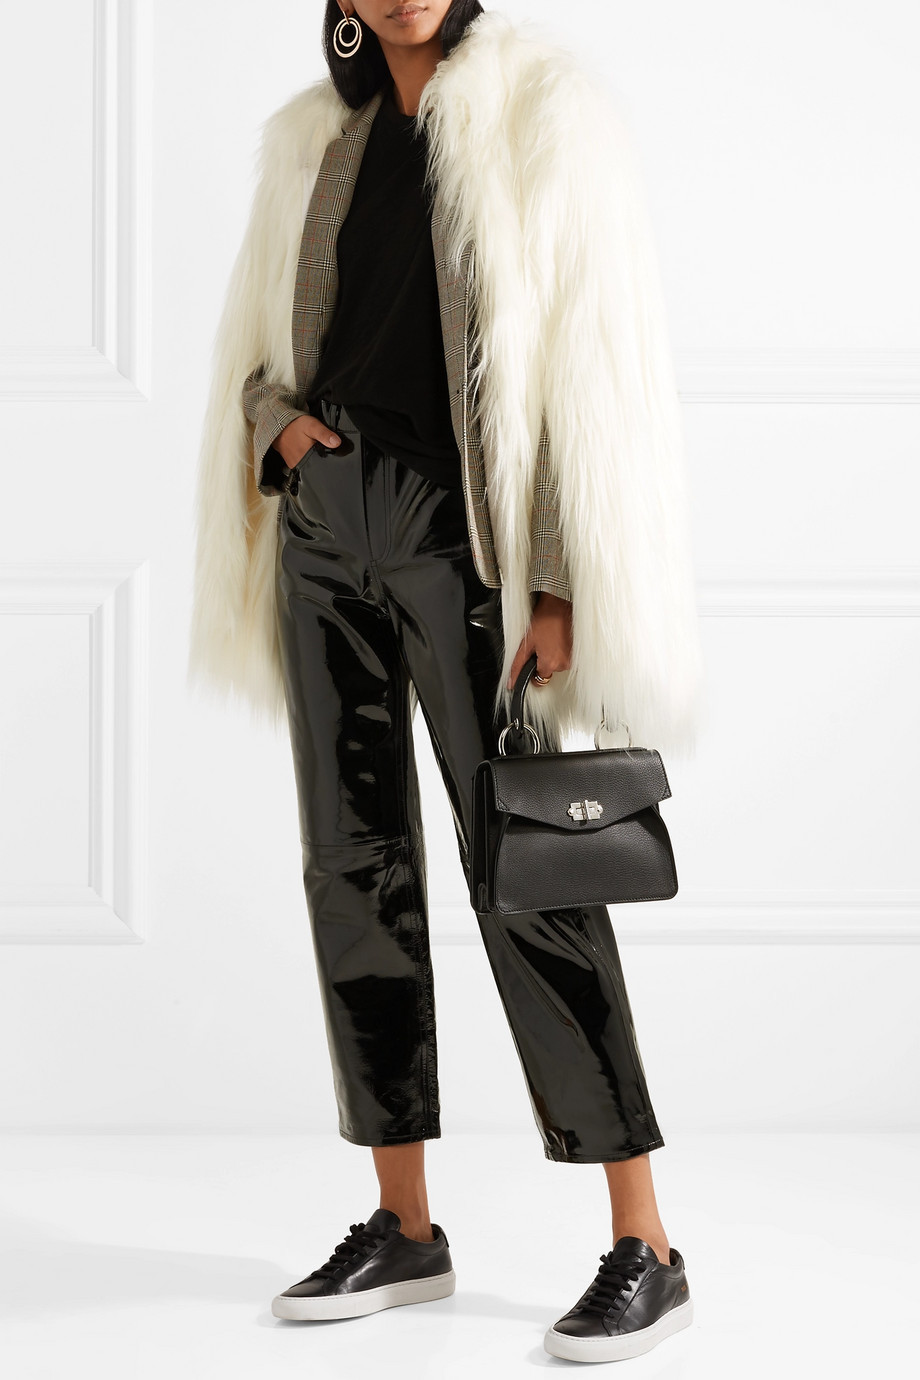 House of Fluff Yeti convertible oversized faux fur coat $198